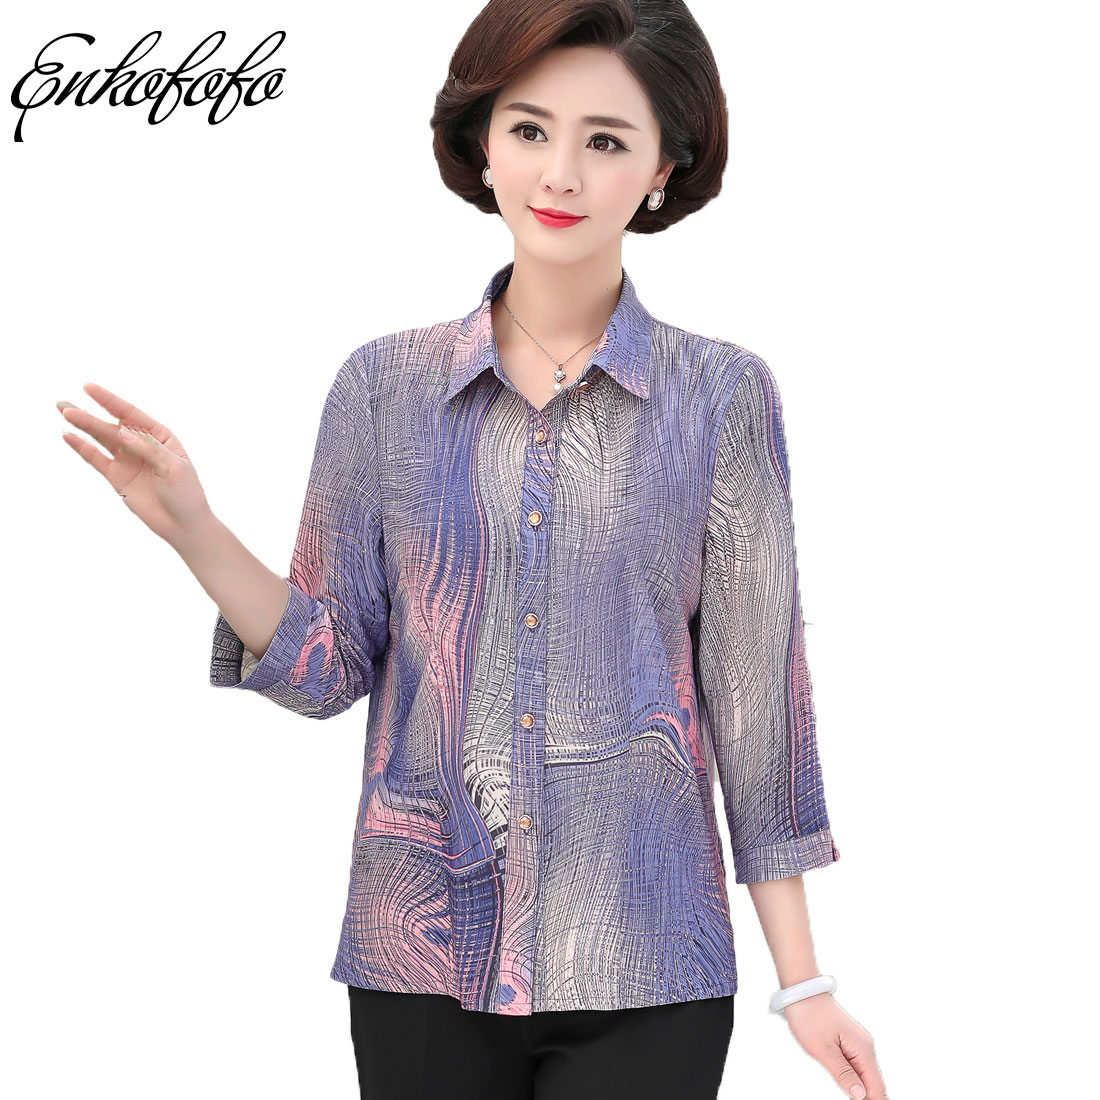 559f8074d2c201 2018 New Summer Fashion Print Casual Blouse Women Tops and Blouses Three  Quarter Sleeve Turn Down Collar Shirt Vintage OL Tops